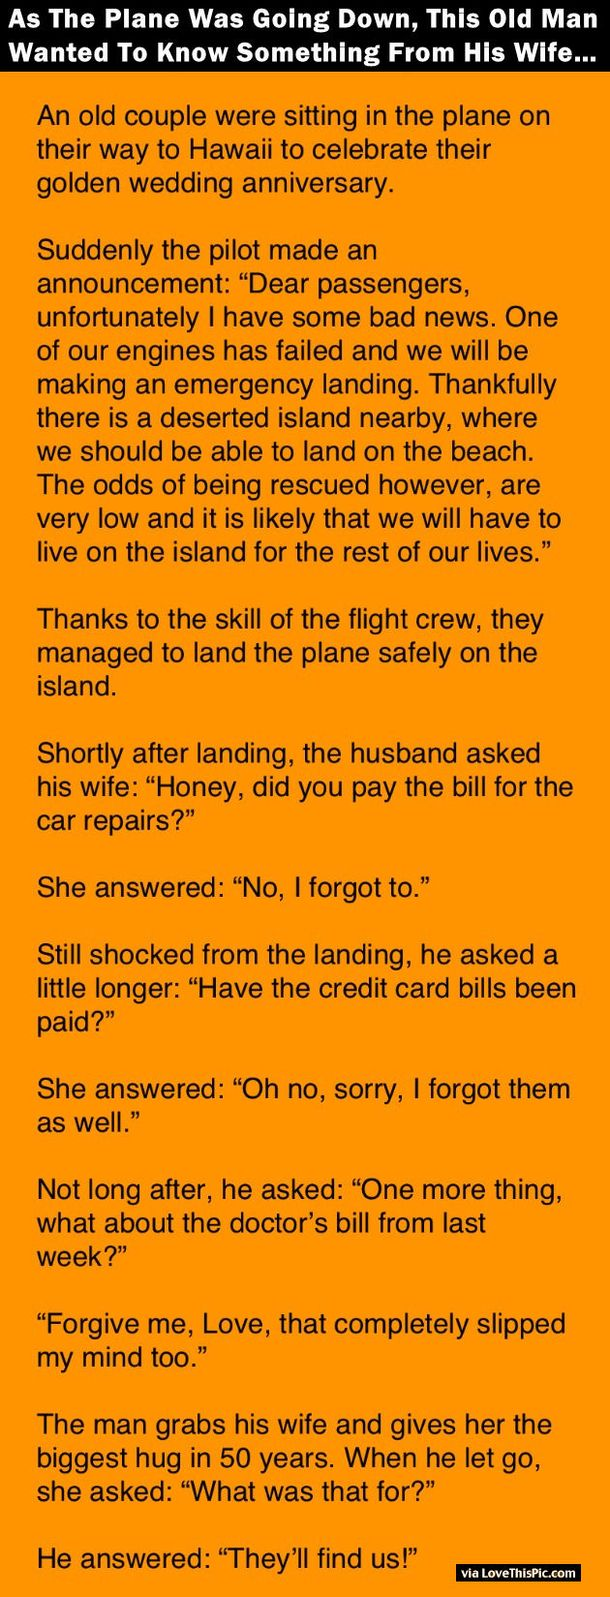 As The Plane Was Going Down, This Old Man Wanted To Know Something From His Wife.